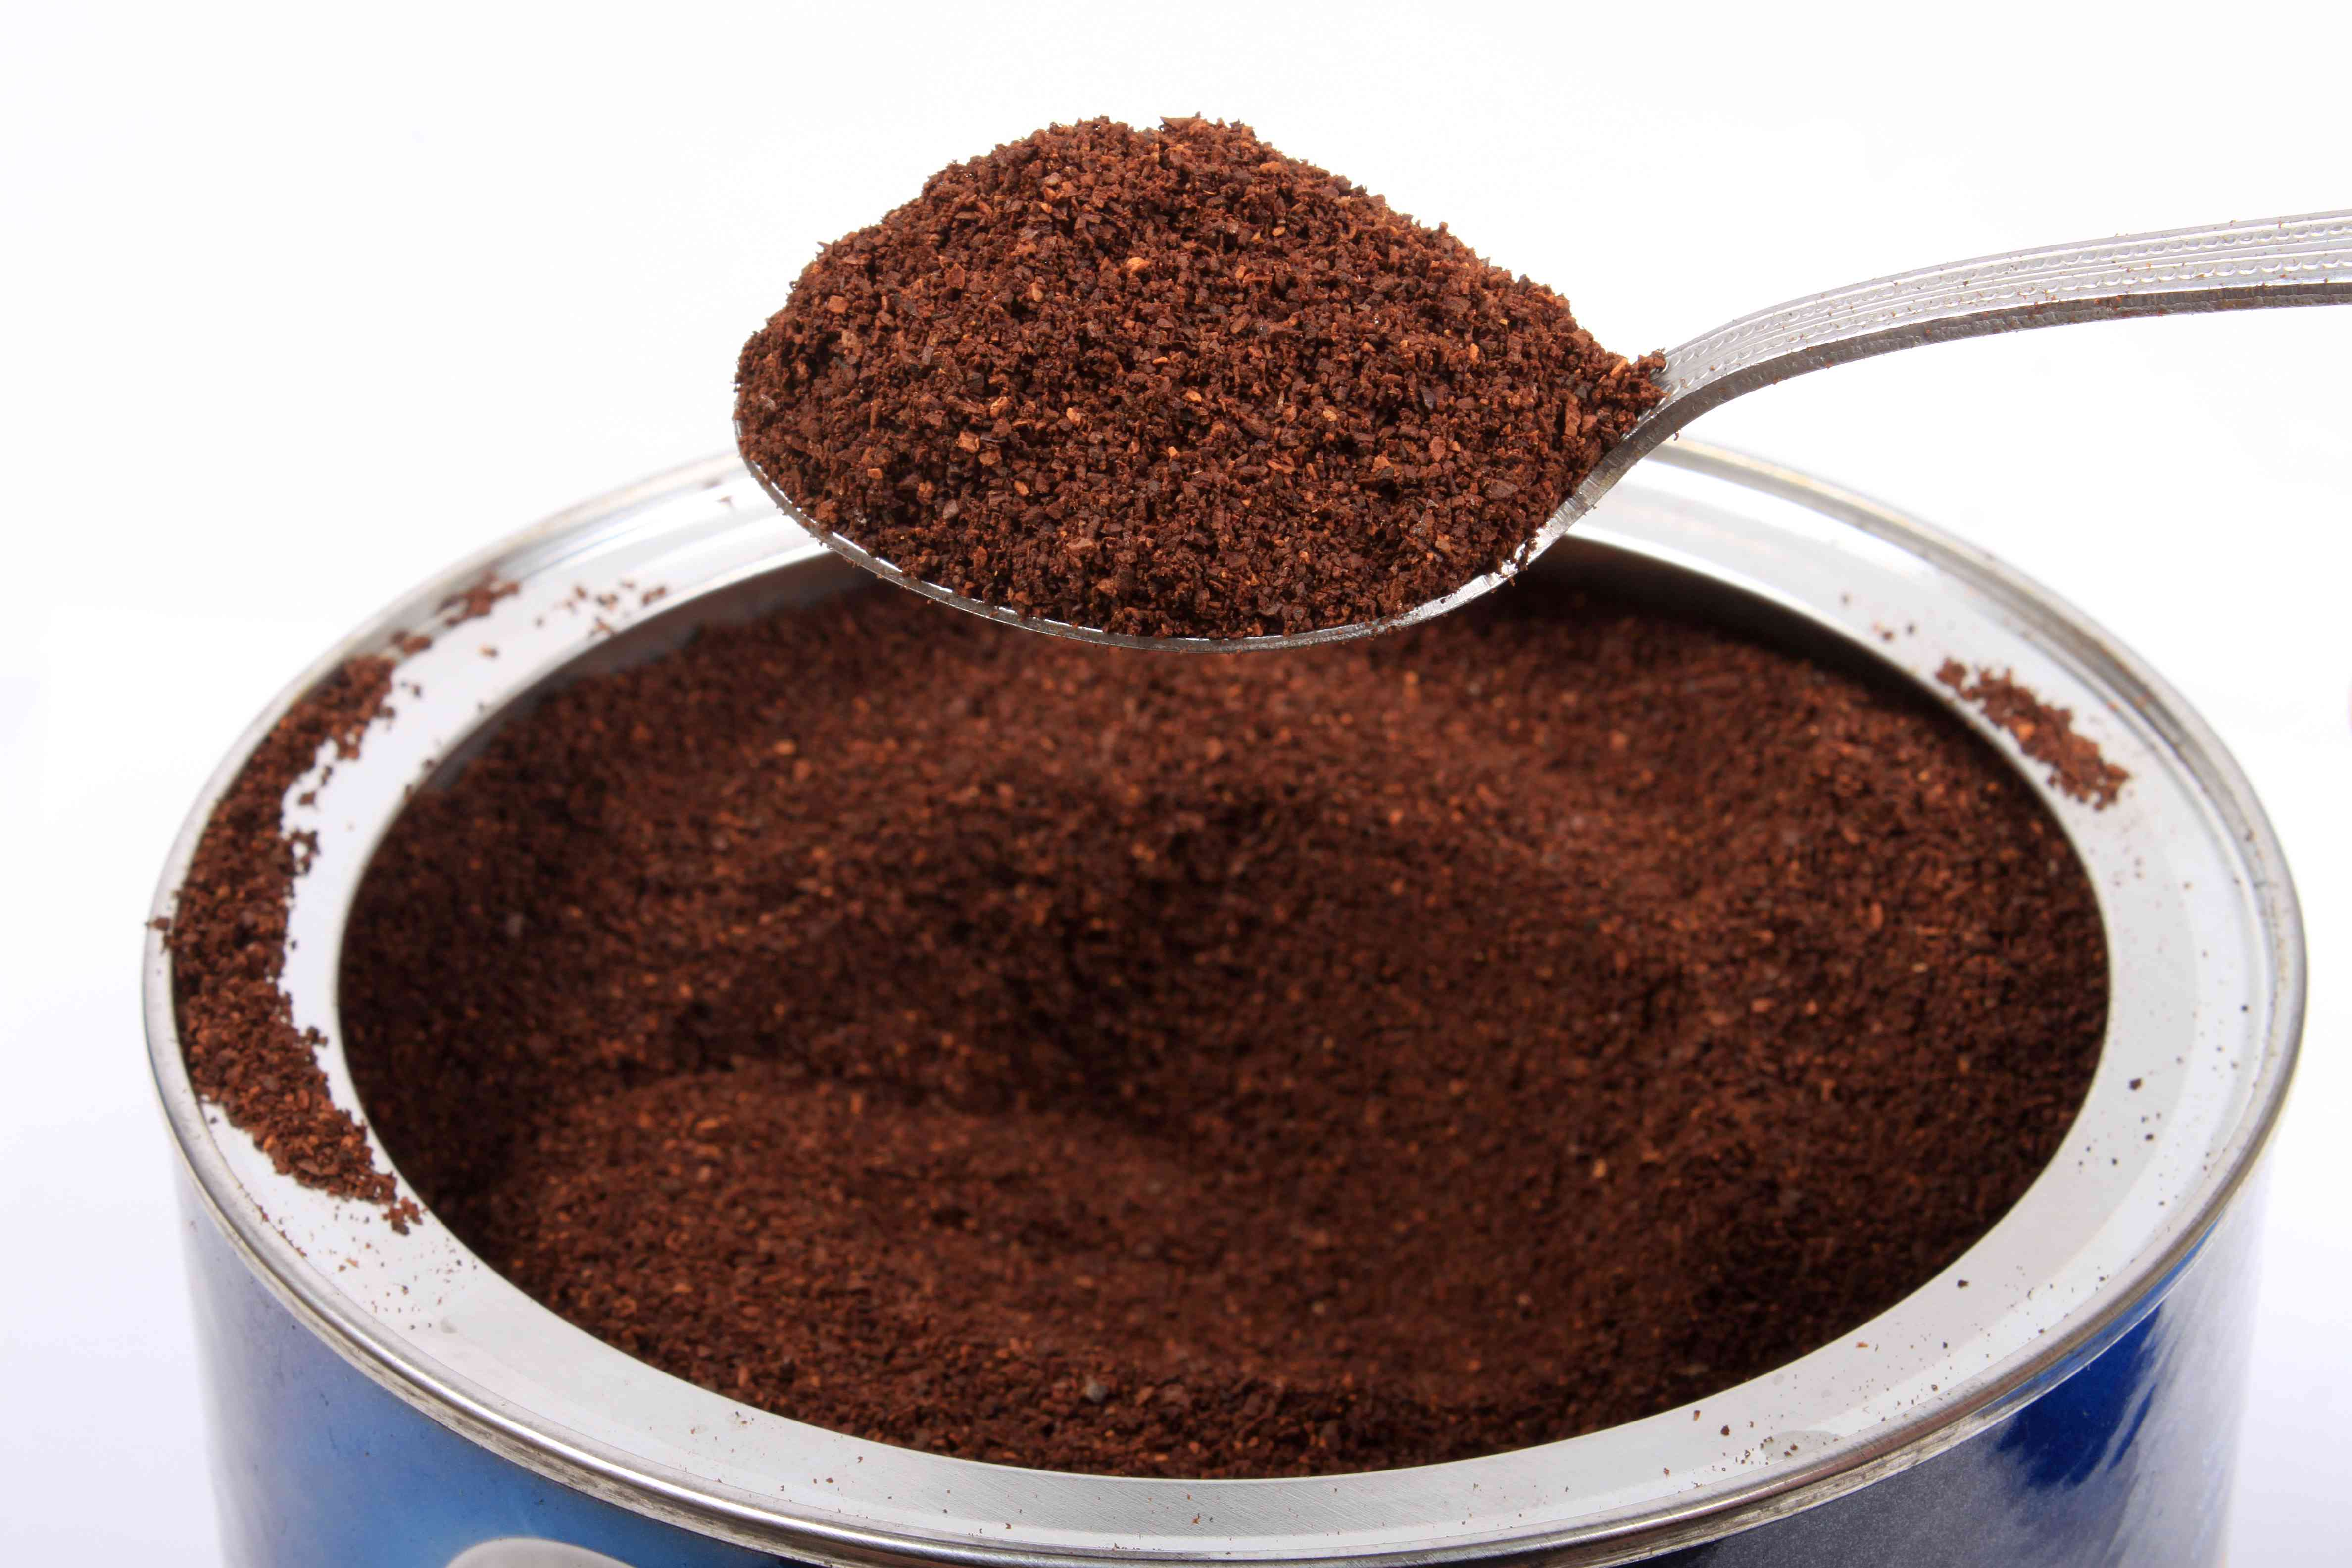 Spoonful of coffee grounds above a blue coffee can